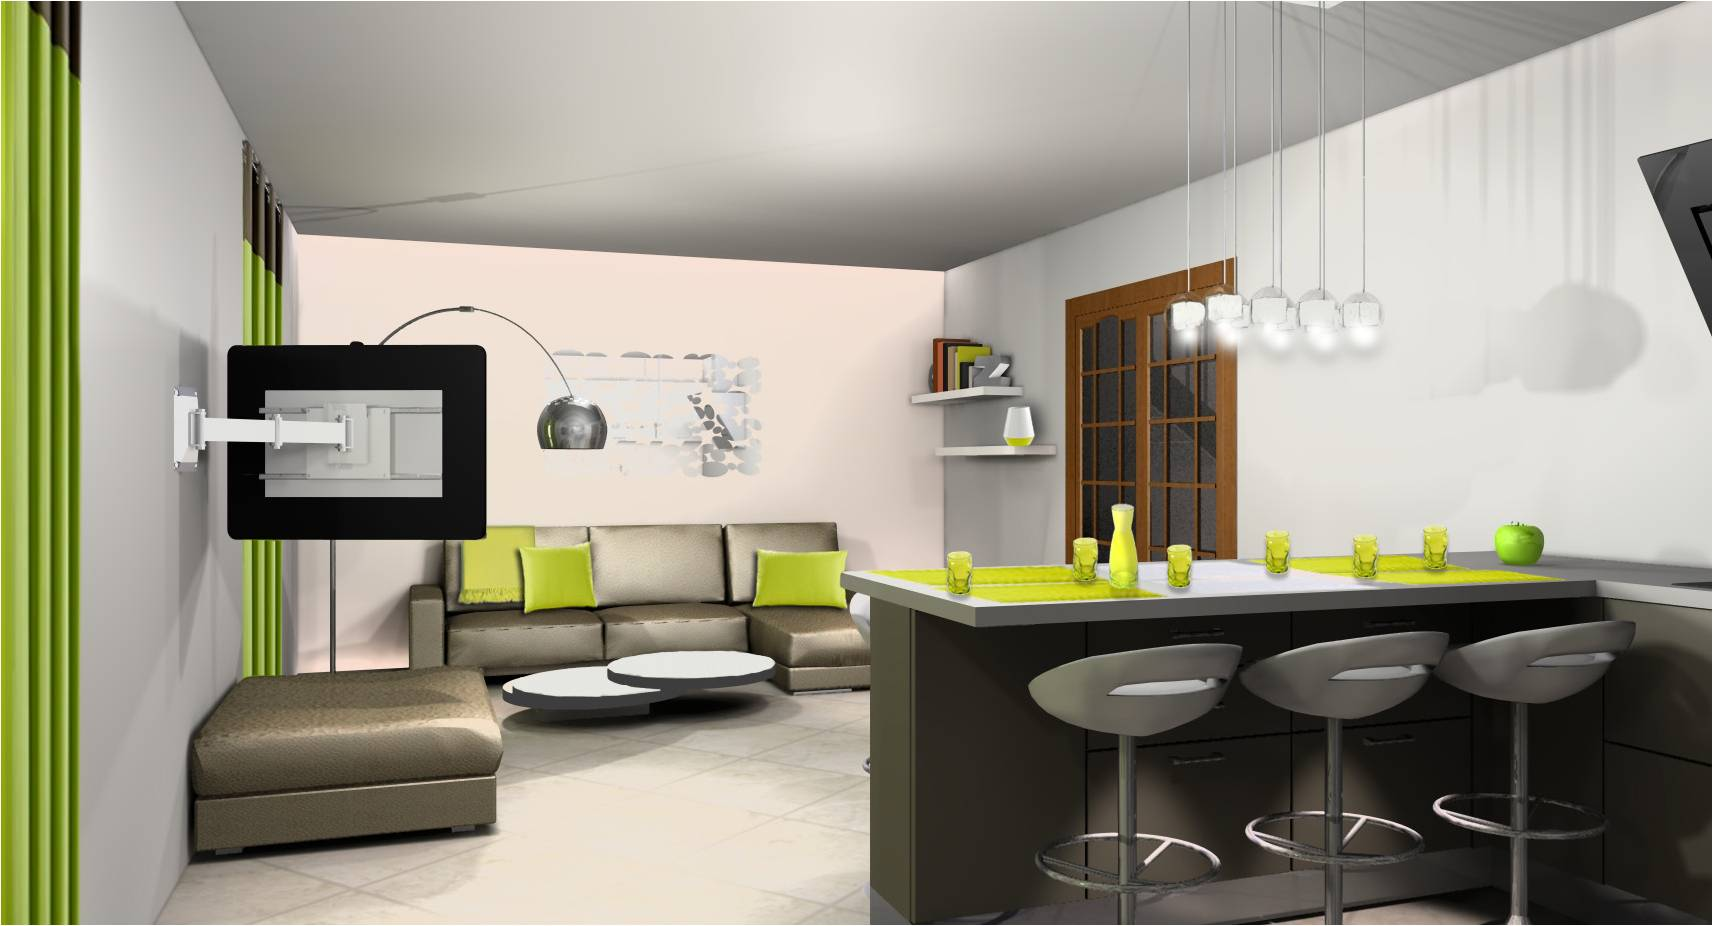 D co cuisine americaine exemples d 39 am nagements - Idee amenagement cuisine ouverte sur salon ...